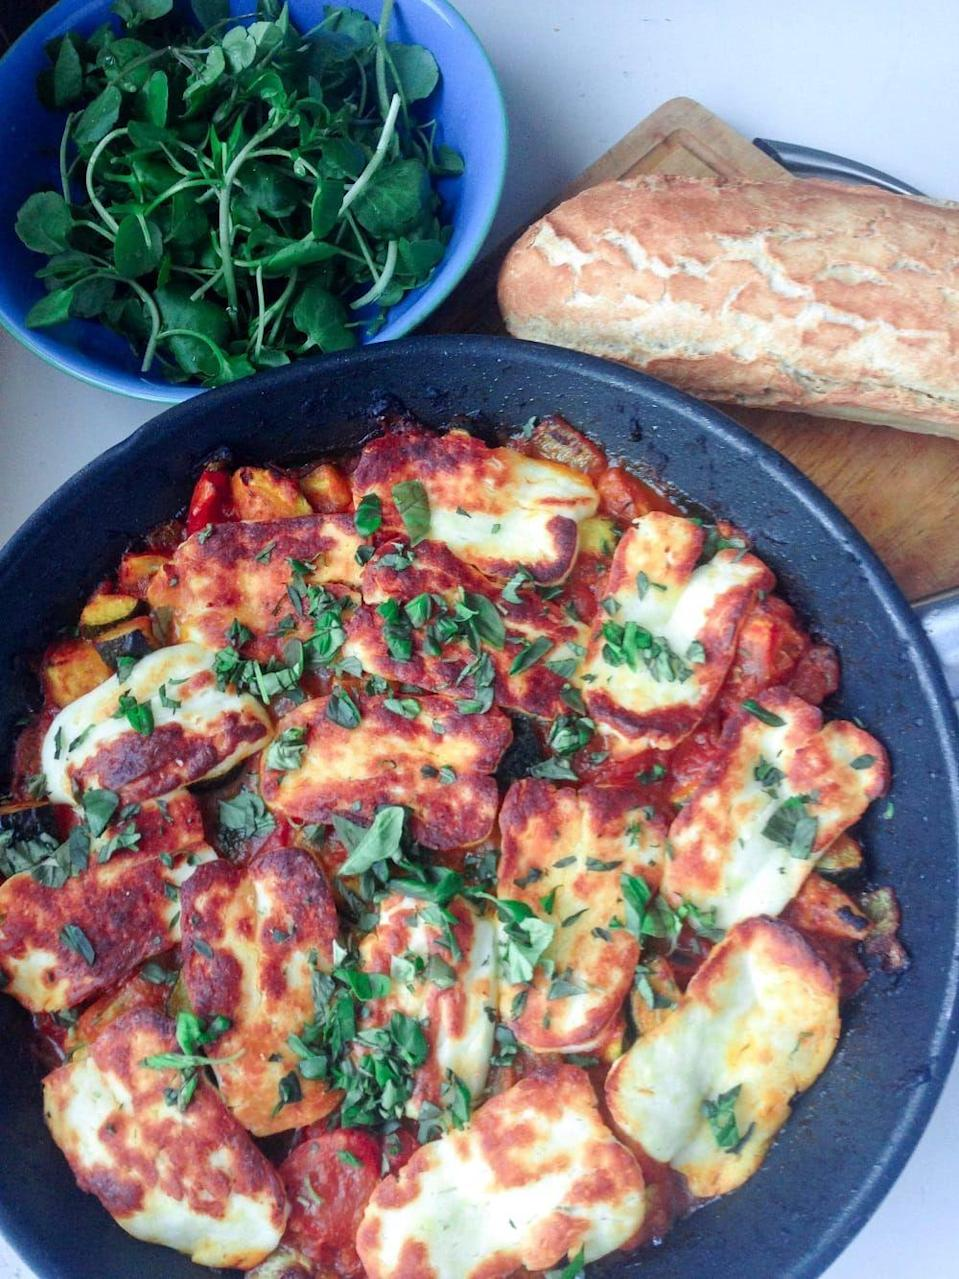 """<p>Tomatoes and halloumi are one delicious flavour combination. </p><p>Get the <a href=""""https://thecookreport.co.uk/tomato-halloumi-bake/"""" rel=""""nofollow noopener"""" target=""""_blank"""" data-ylk=""""slk:Tomato and Halloumi Bake with Courgette"""" class=""""link rapid-noclick-resp"""">Tomato and Halloumi Bake with Courgette</a> recipe. </p><p>Recipe from <a href=""""https://thecookreport.co.uk/"""" rel=""""nofollow noopener"""" target=""""_blank"""" data-ylk=""""slk:The Cook Report"""" class=""""link rapid-noclick-resp"""">The Cook Report</a>.</p>"""